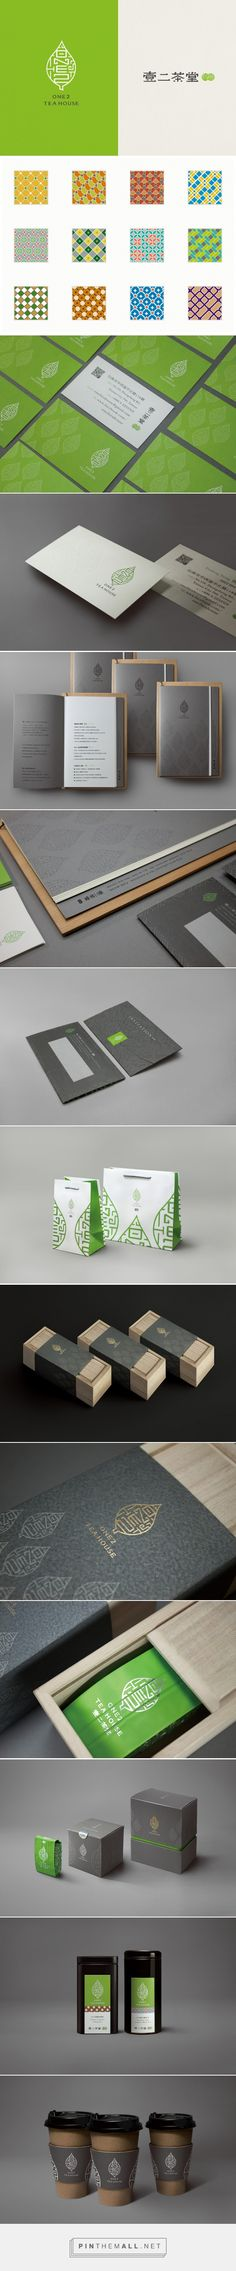 One2 Tea House packaging designed by Sump Design - http://www.packagingoftheworld.com/2015/08/one-2-tea-house.html